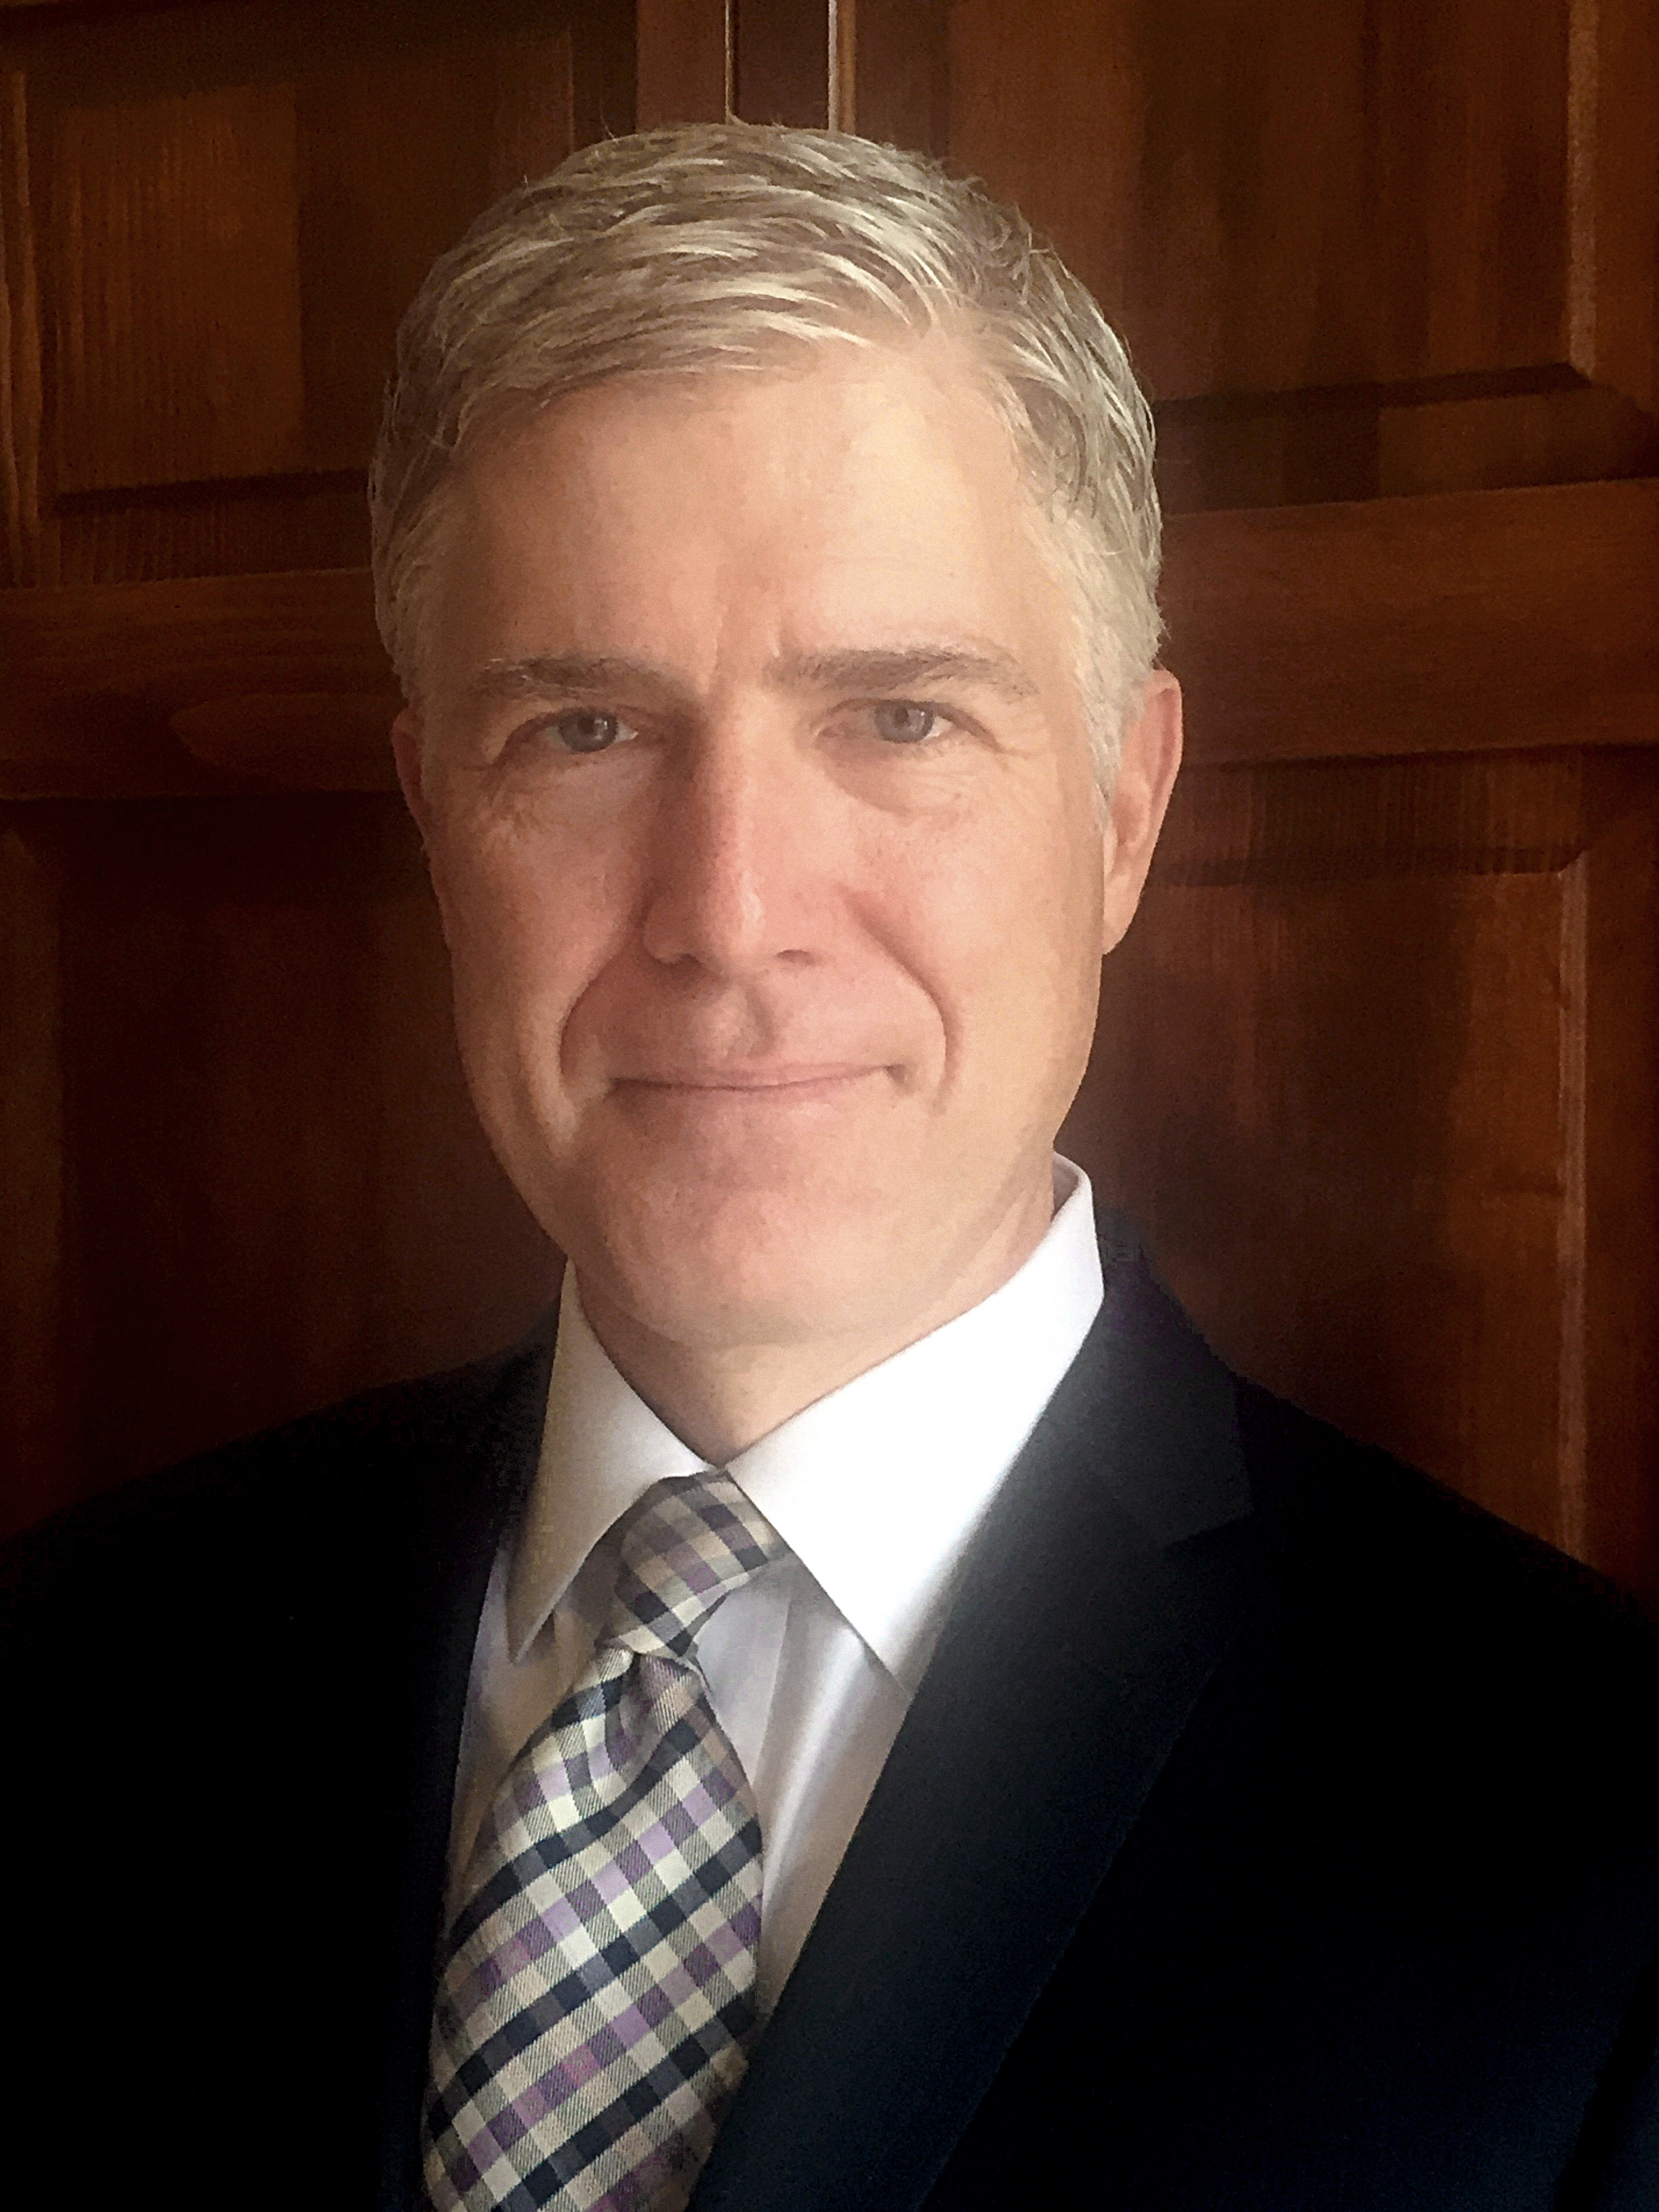 Tenth Circuit Judge Neil Gorsuch (public domain work of the U.S. Government)